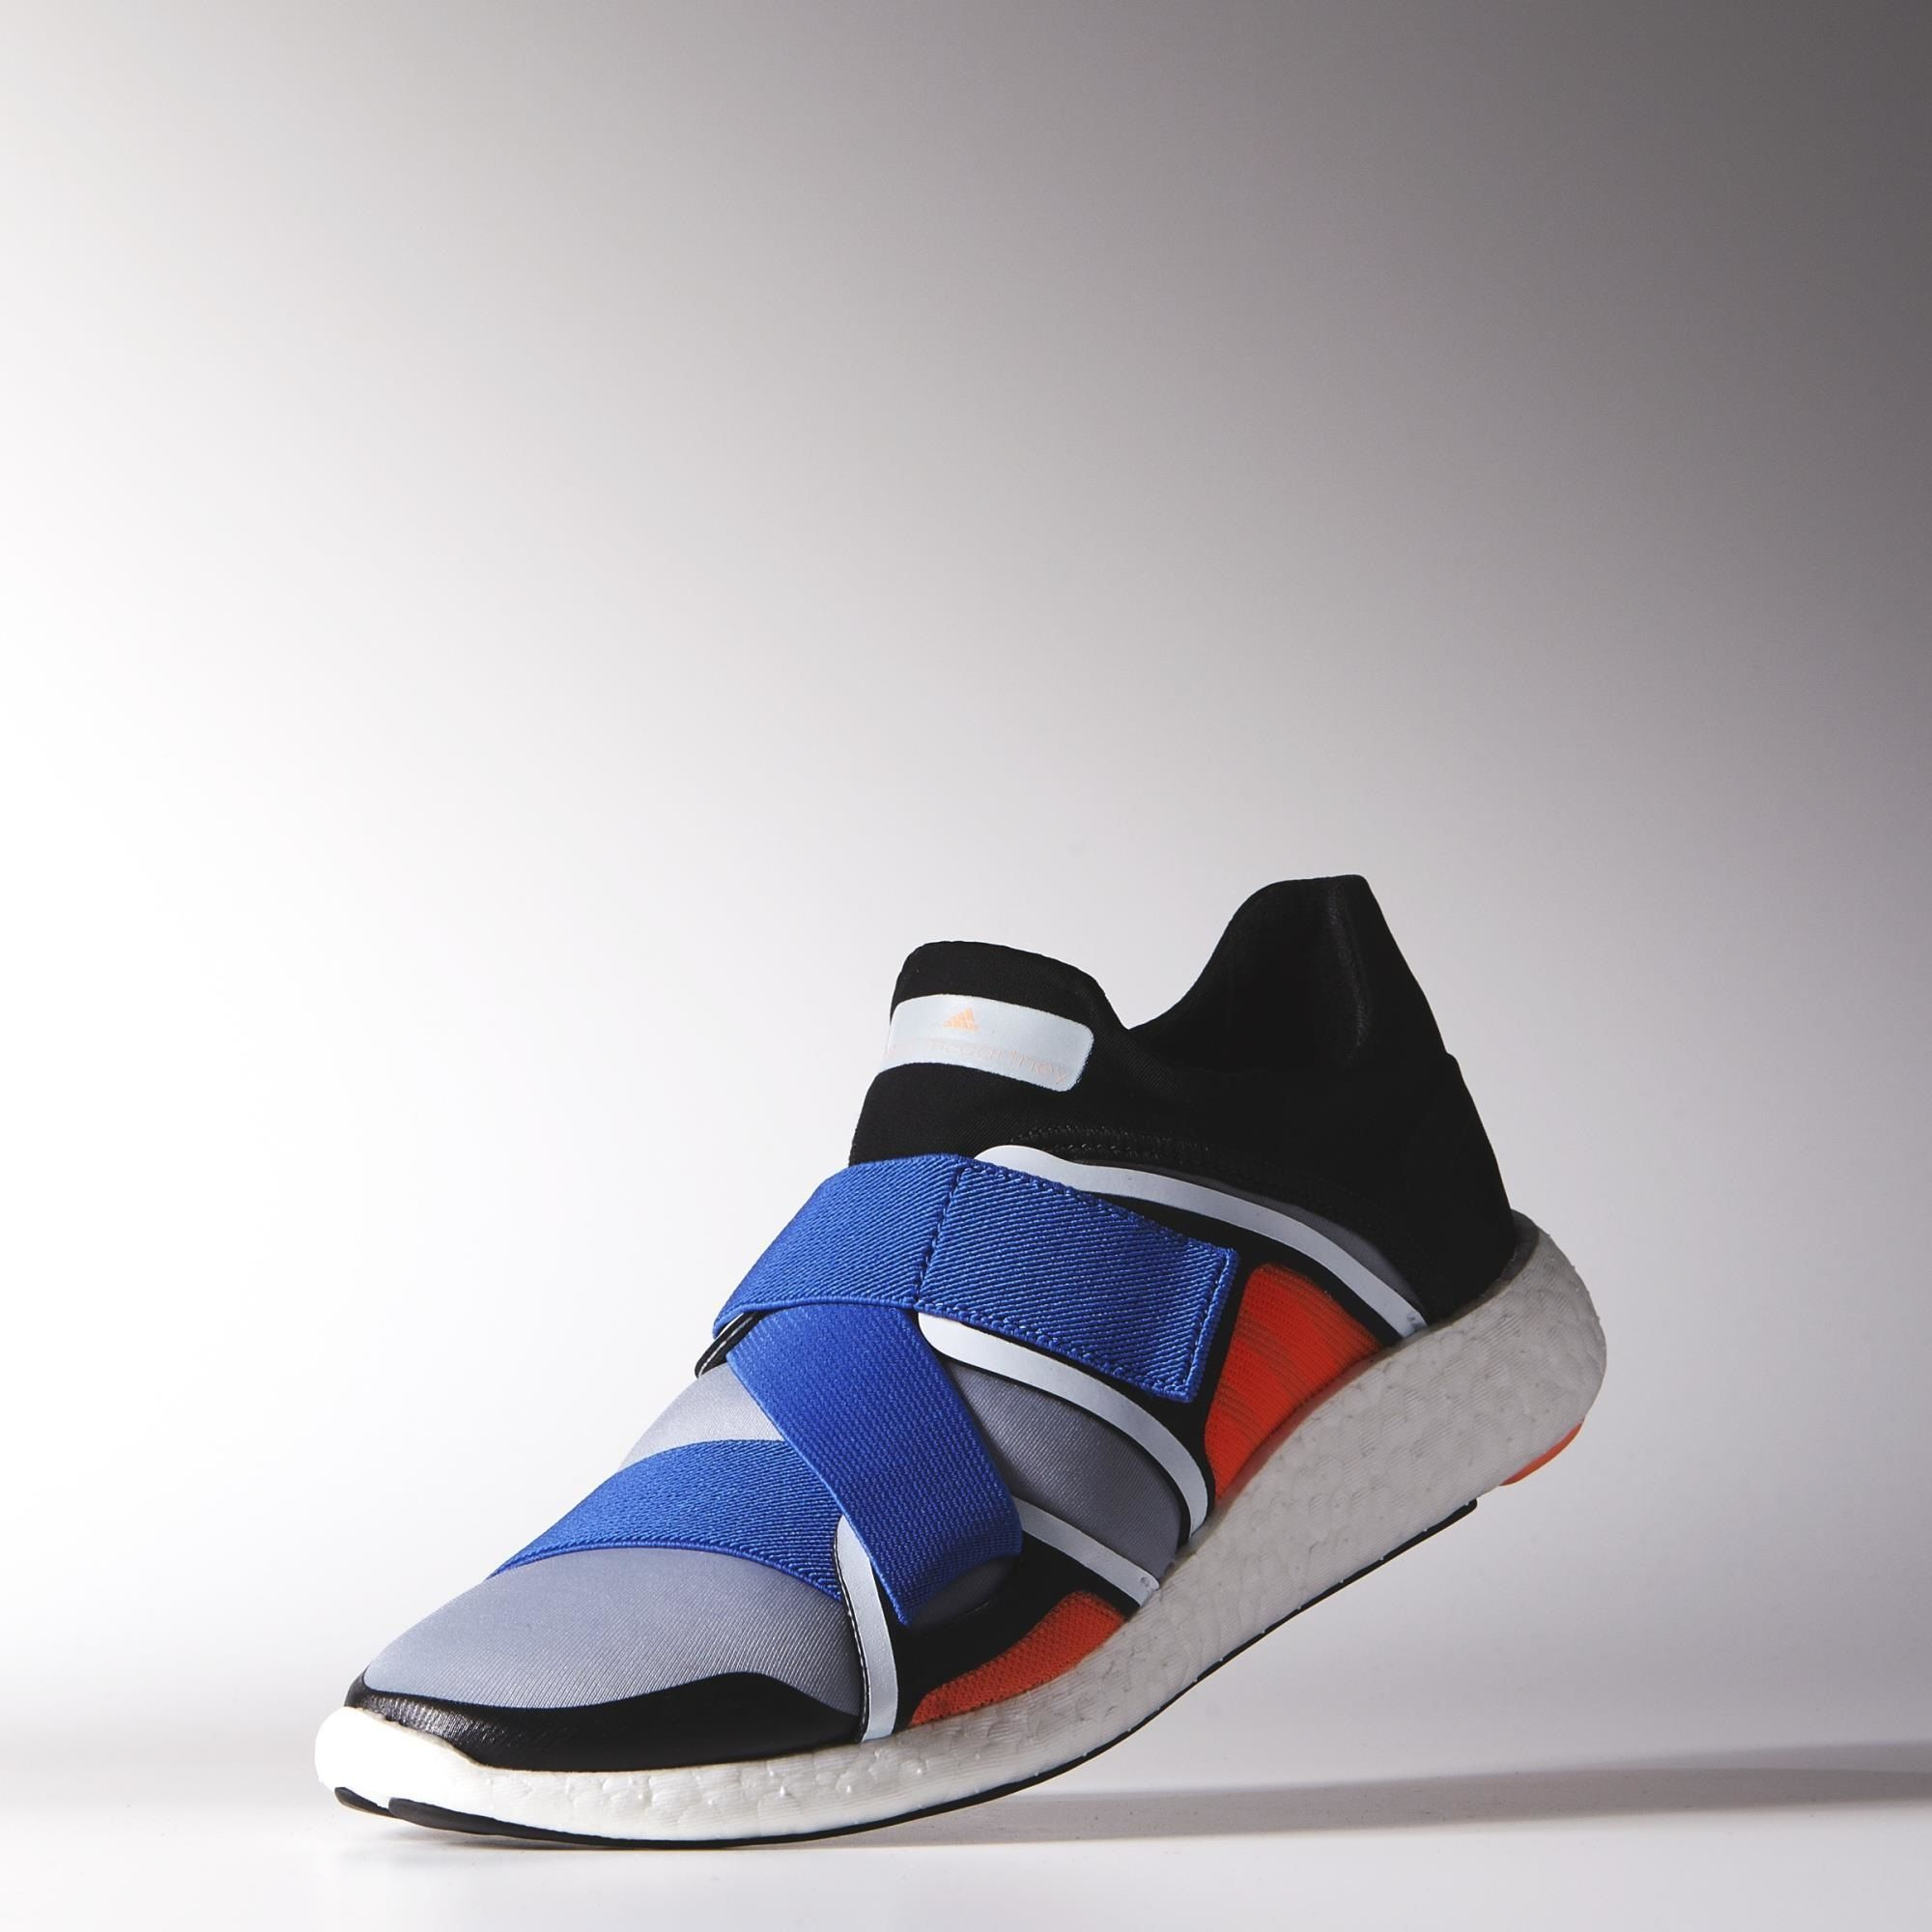 check out dade1 c882c Check Out The Stella McCartney x adidas Pure Boost Collab ...